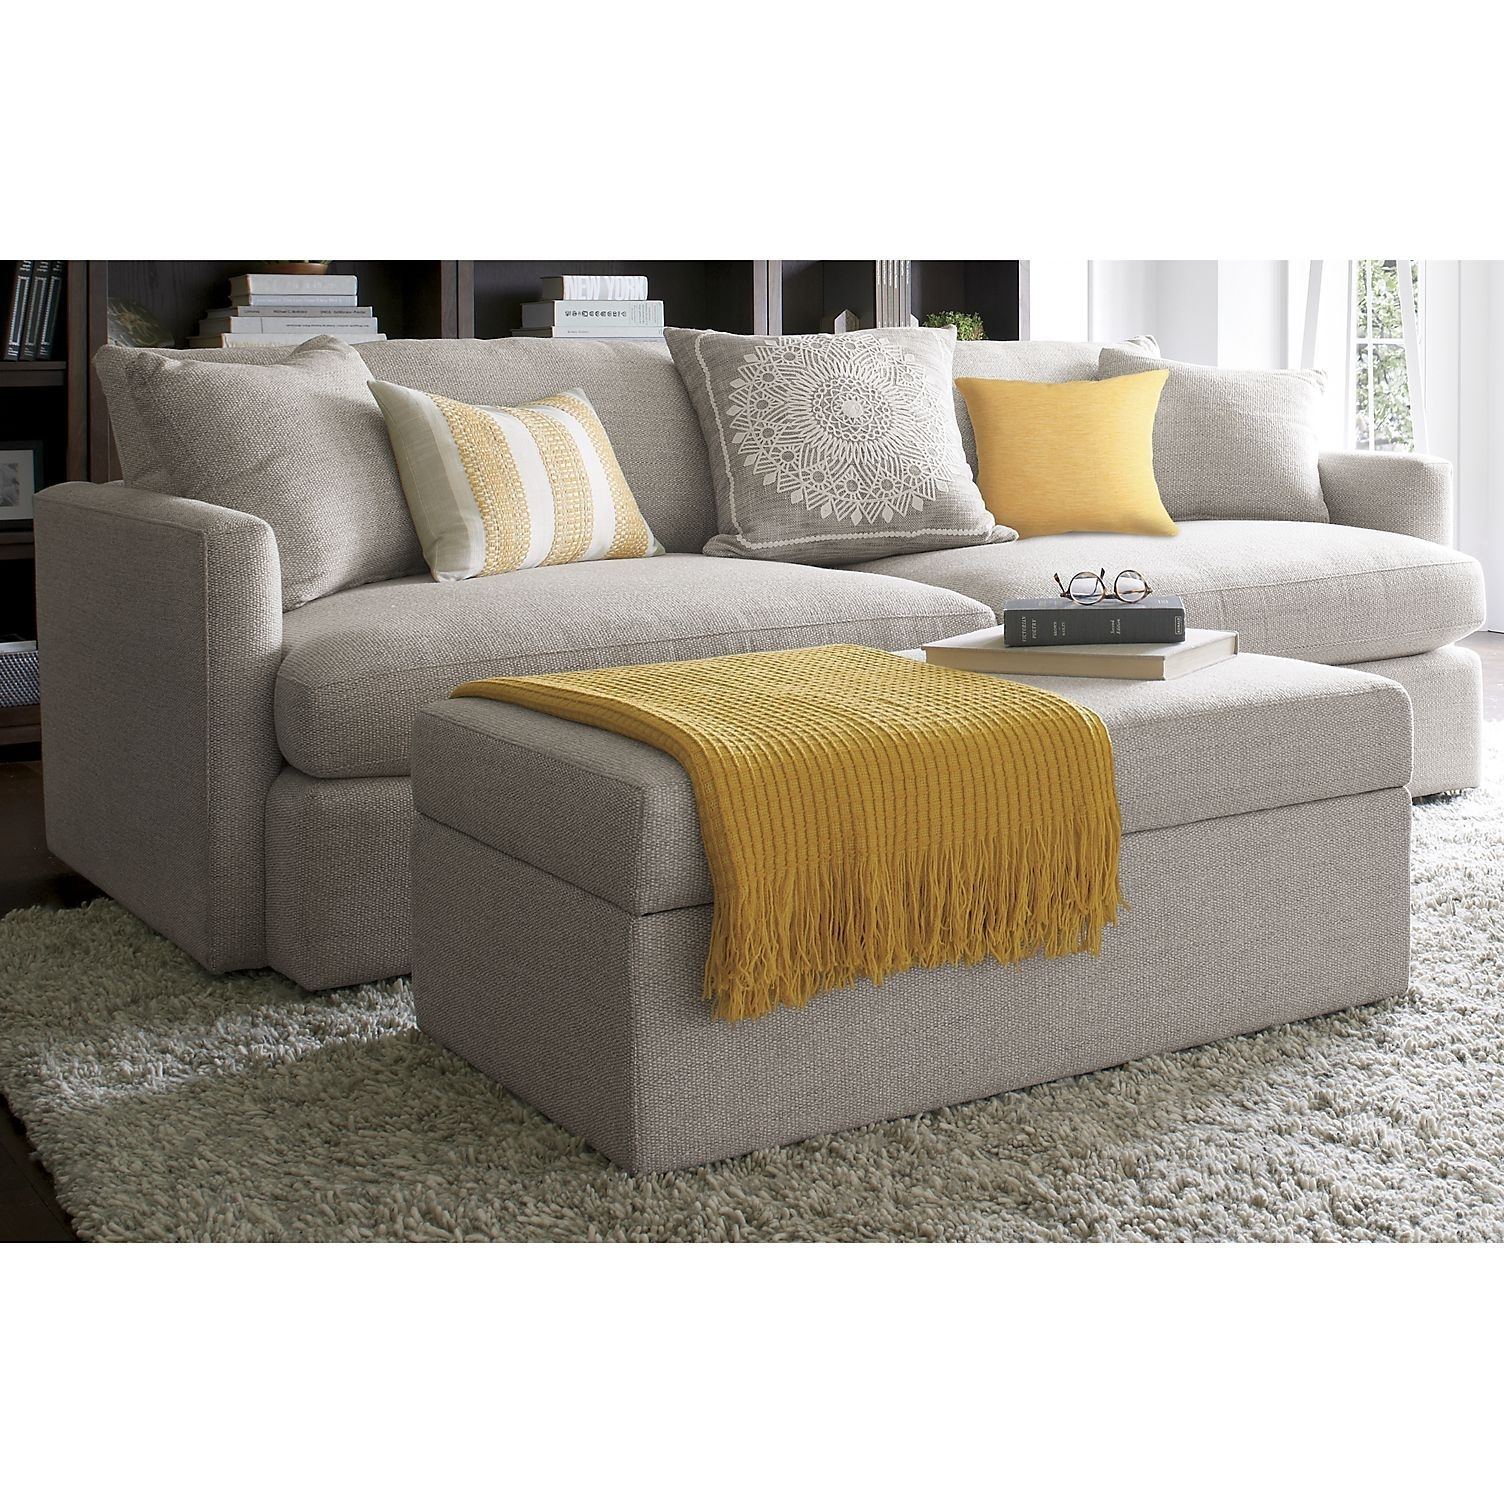 Lounge Ii Storage Ottoman With Tray | My Future Home | Pinterest inside Declan 3 Piece Power Reclining Sectionals With Left Facing Console Loveseat (Image 23 of 30)